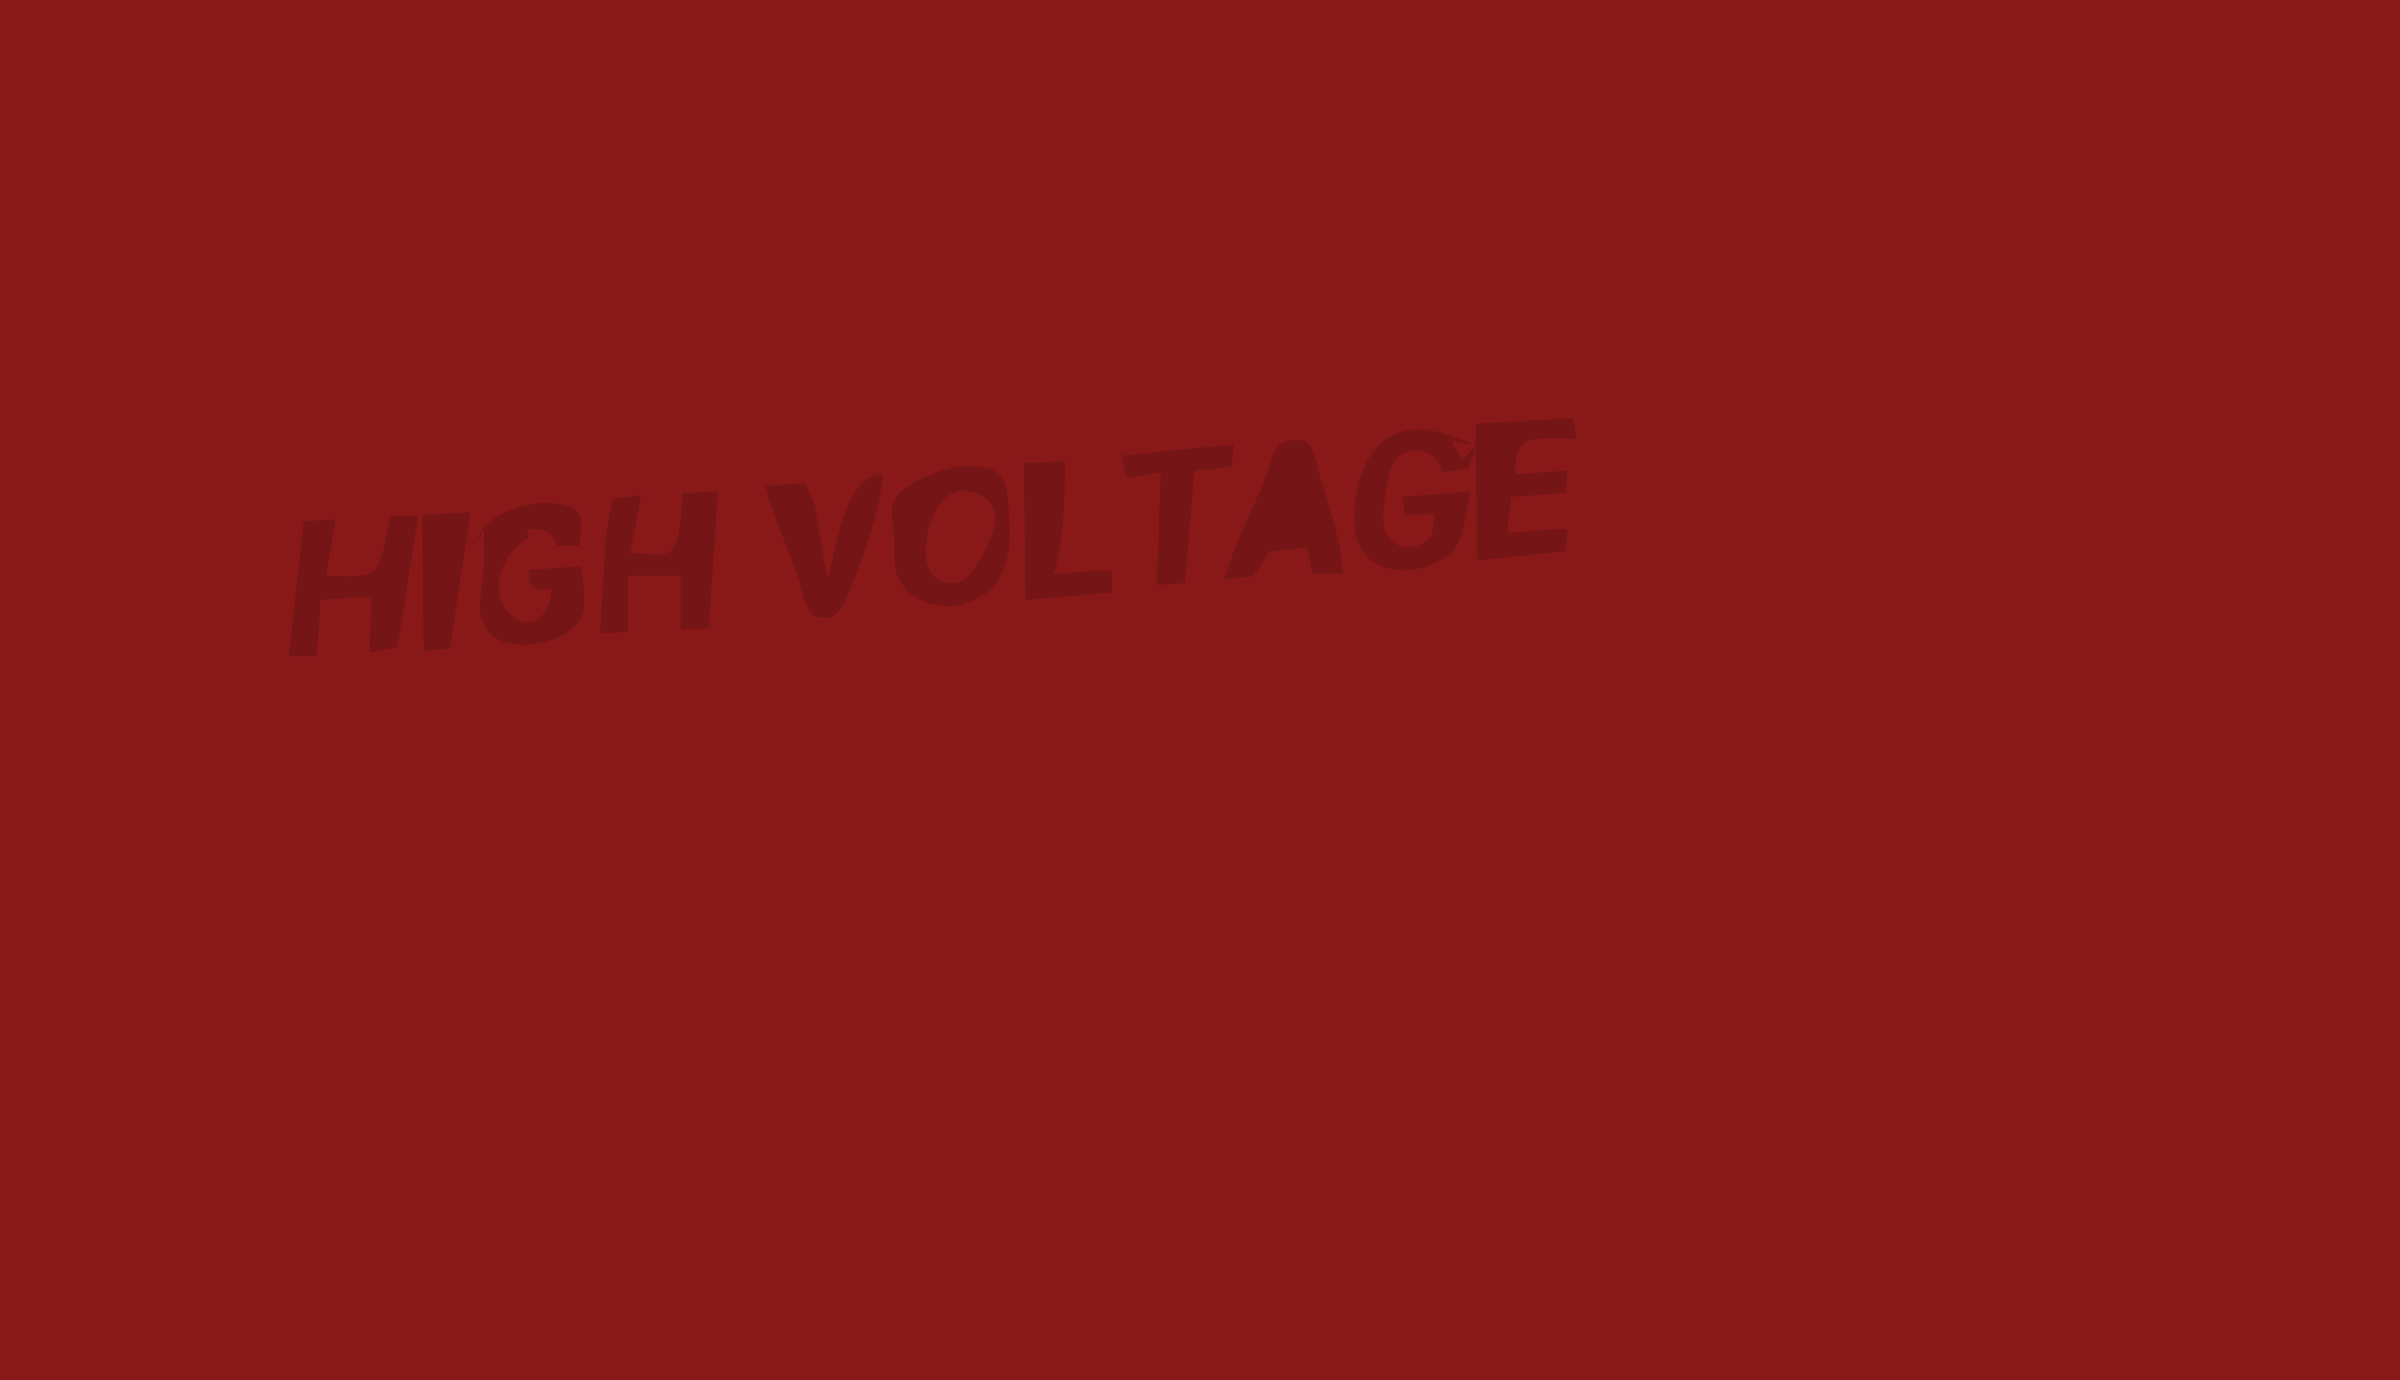 High Voltage by martinaledermann